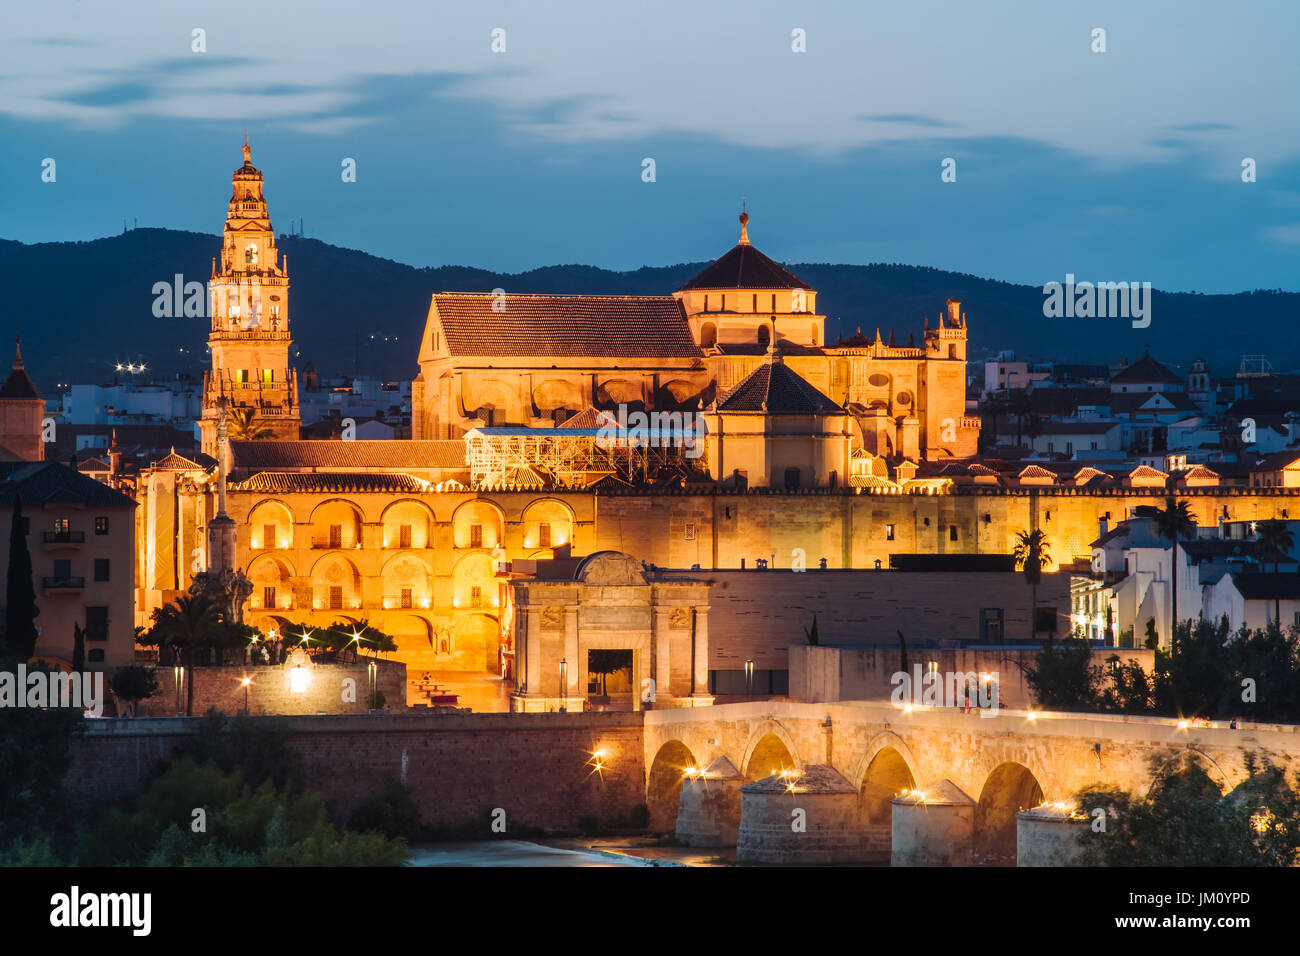 Sunset over the amazing Mezquita, ancient mosque in Cordoba, Spain - Stock Image